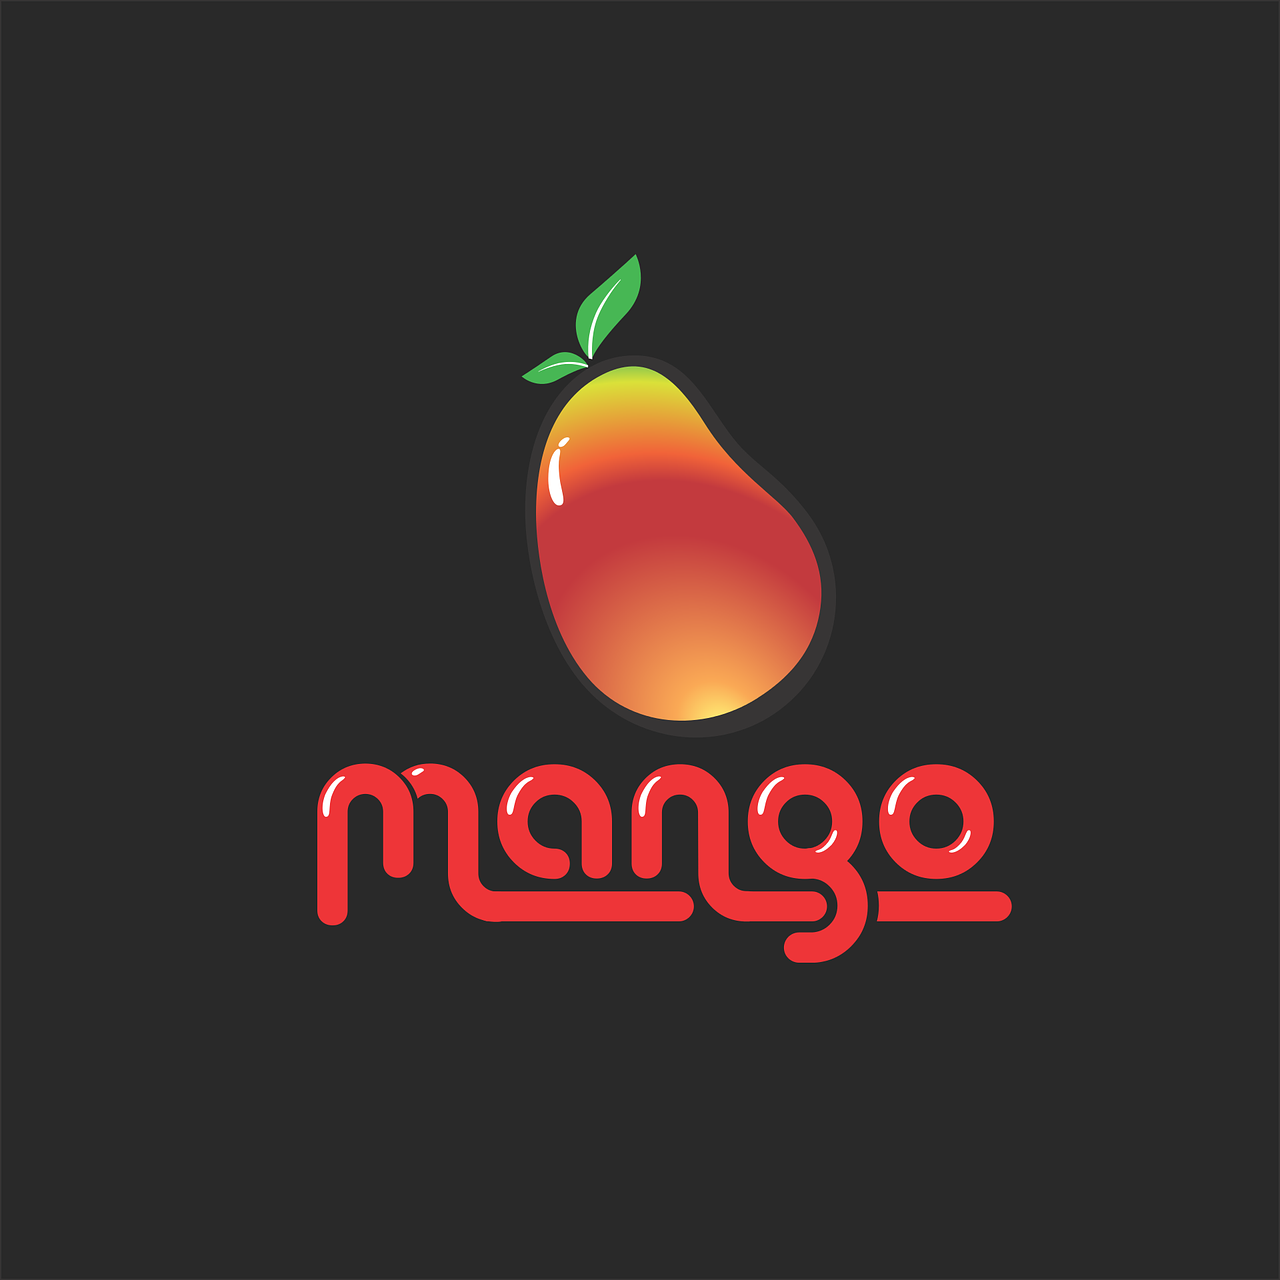 Mango Side Effects: What Are the Risks of Eating Mango at Night